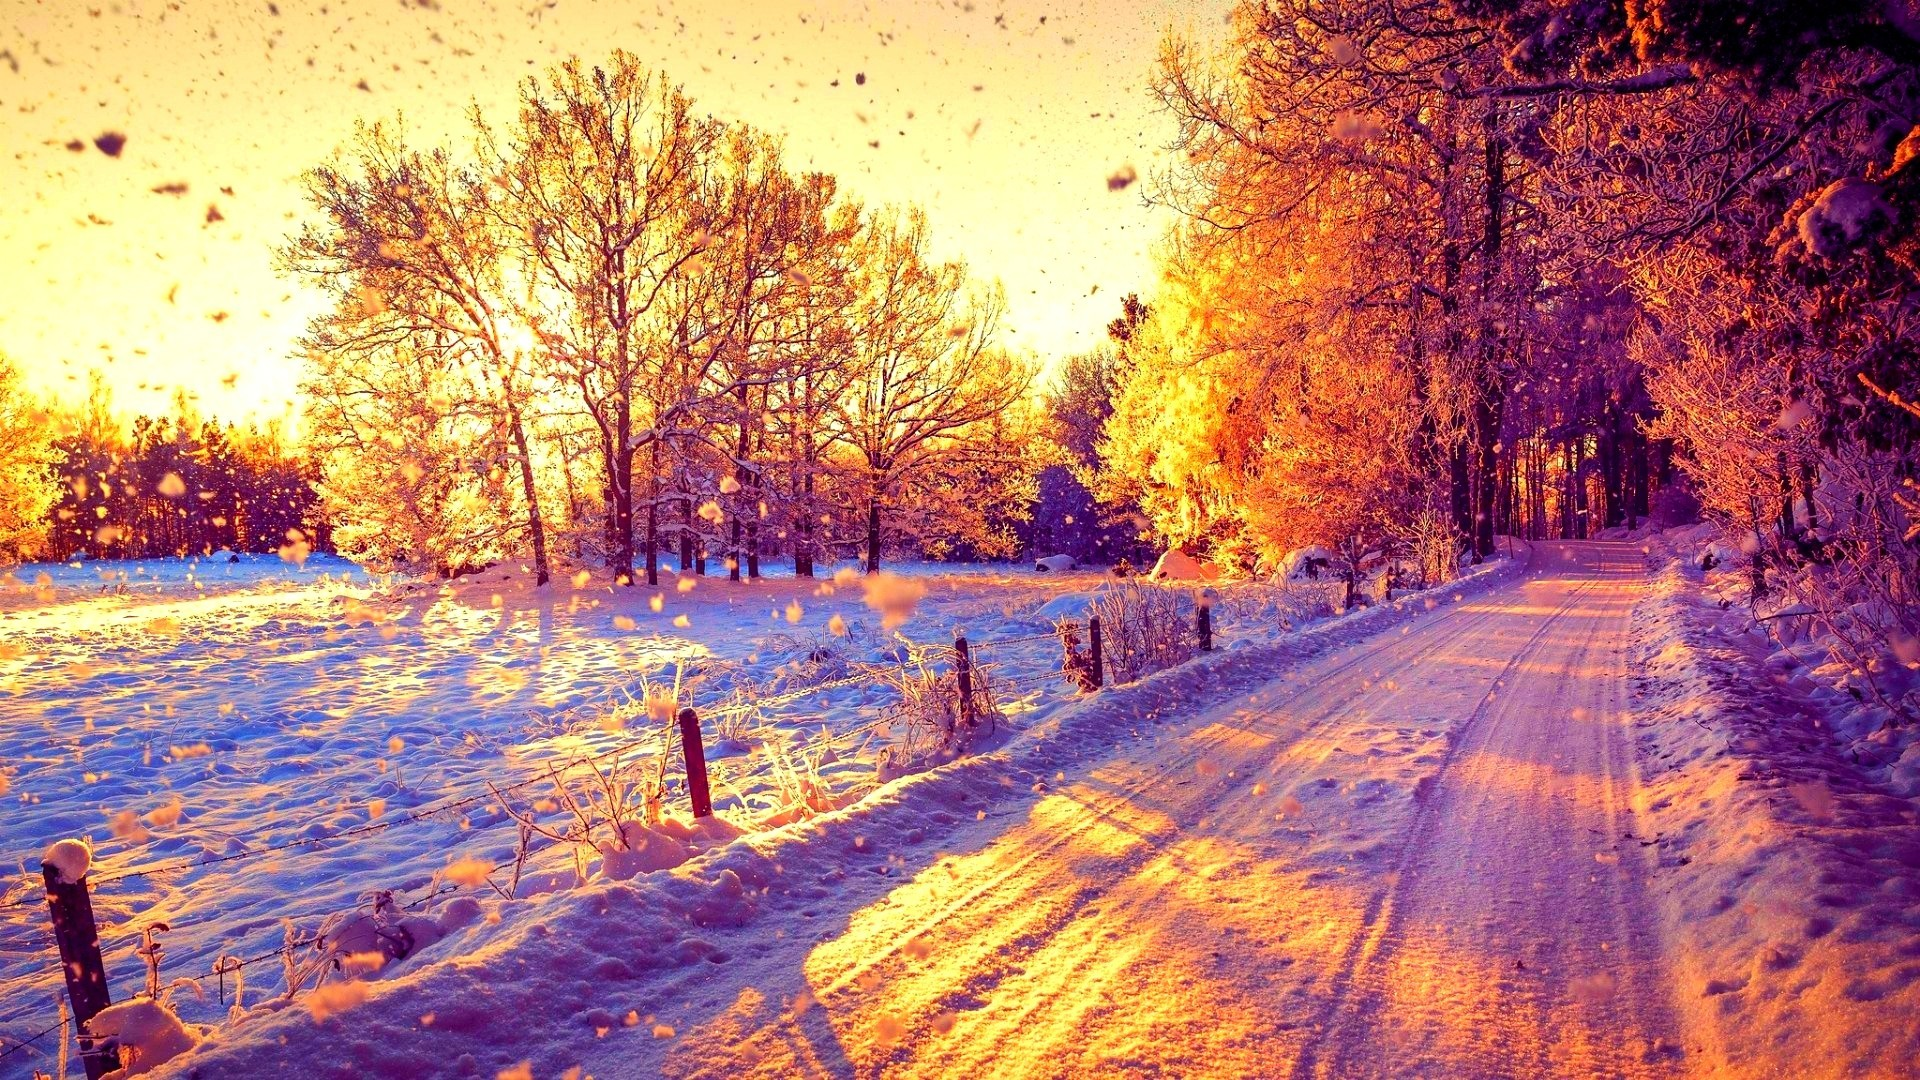 1920x1080 Beautiful Snow Forest Winter Sun Trees Nature Sunny Road Sunset Sunshine  Amazing Wallpaper Iphone 6 Plus